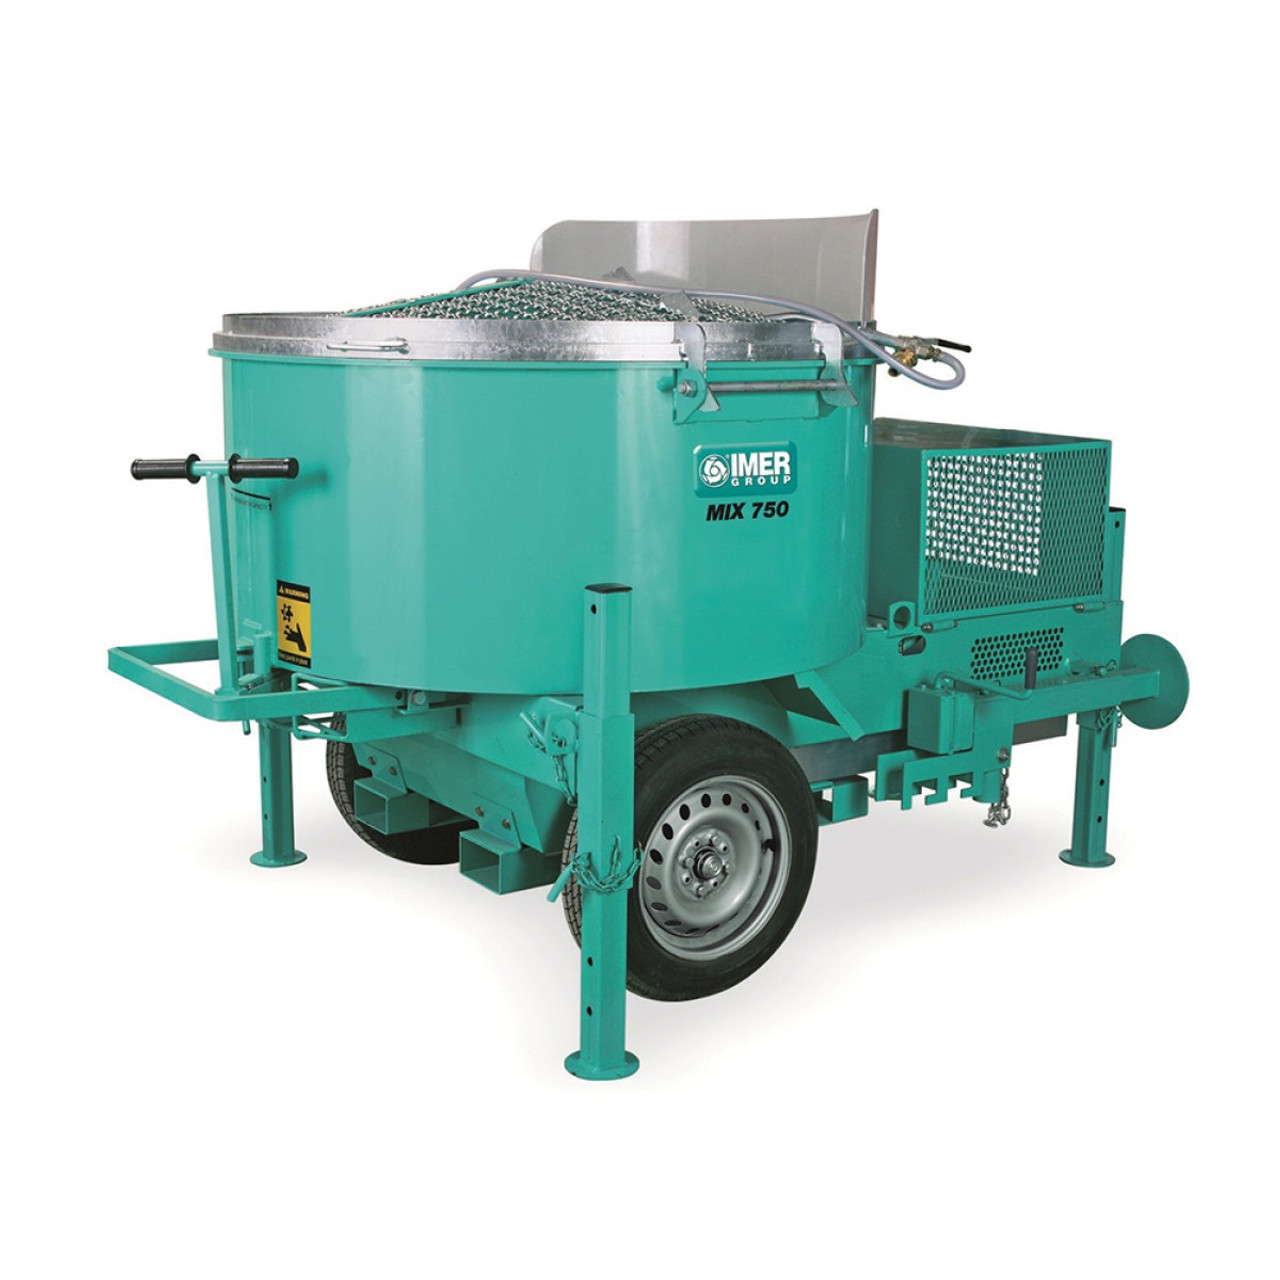 Imer Mortar Mix 750 3 Phase Electric